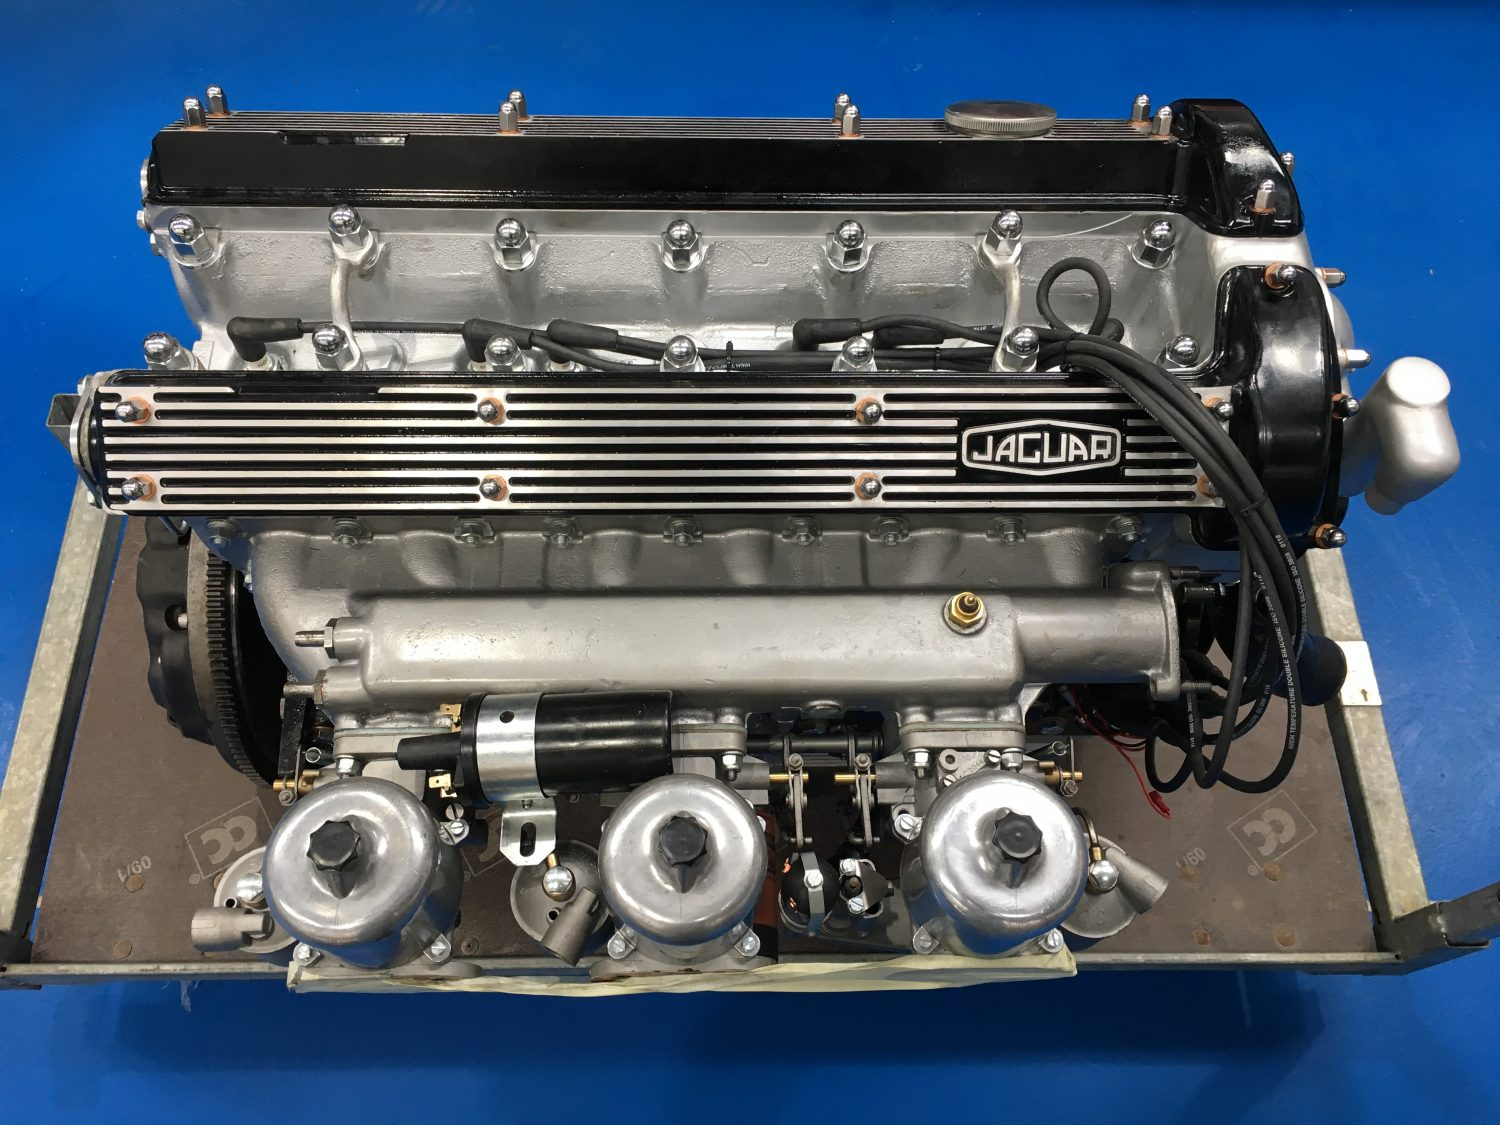 1969 Jaguar E-Type Engine